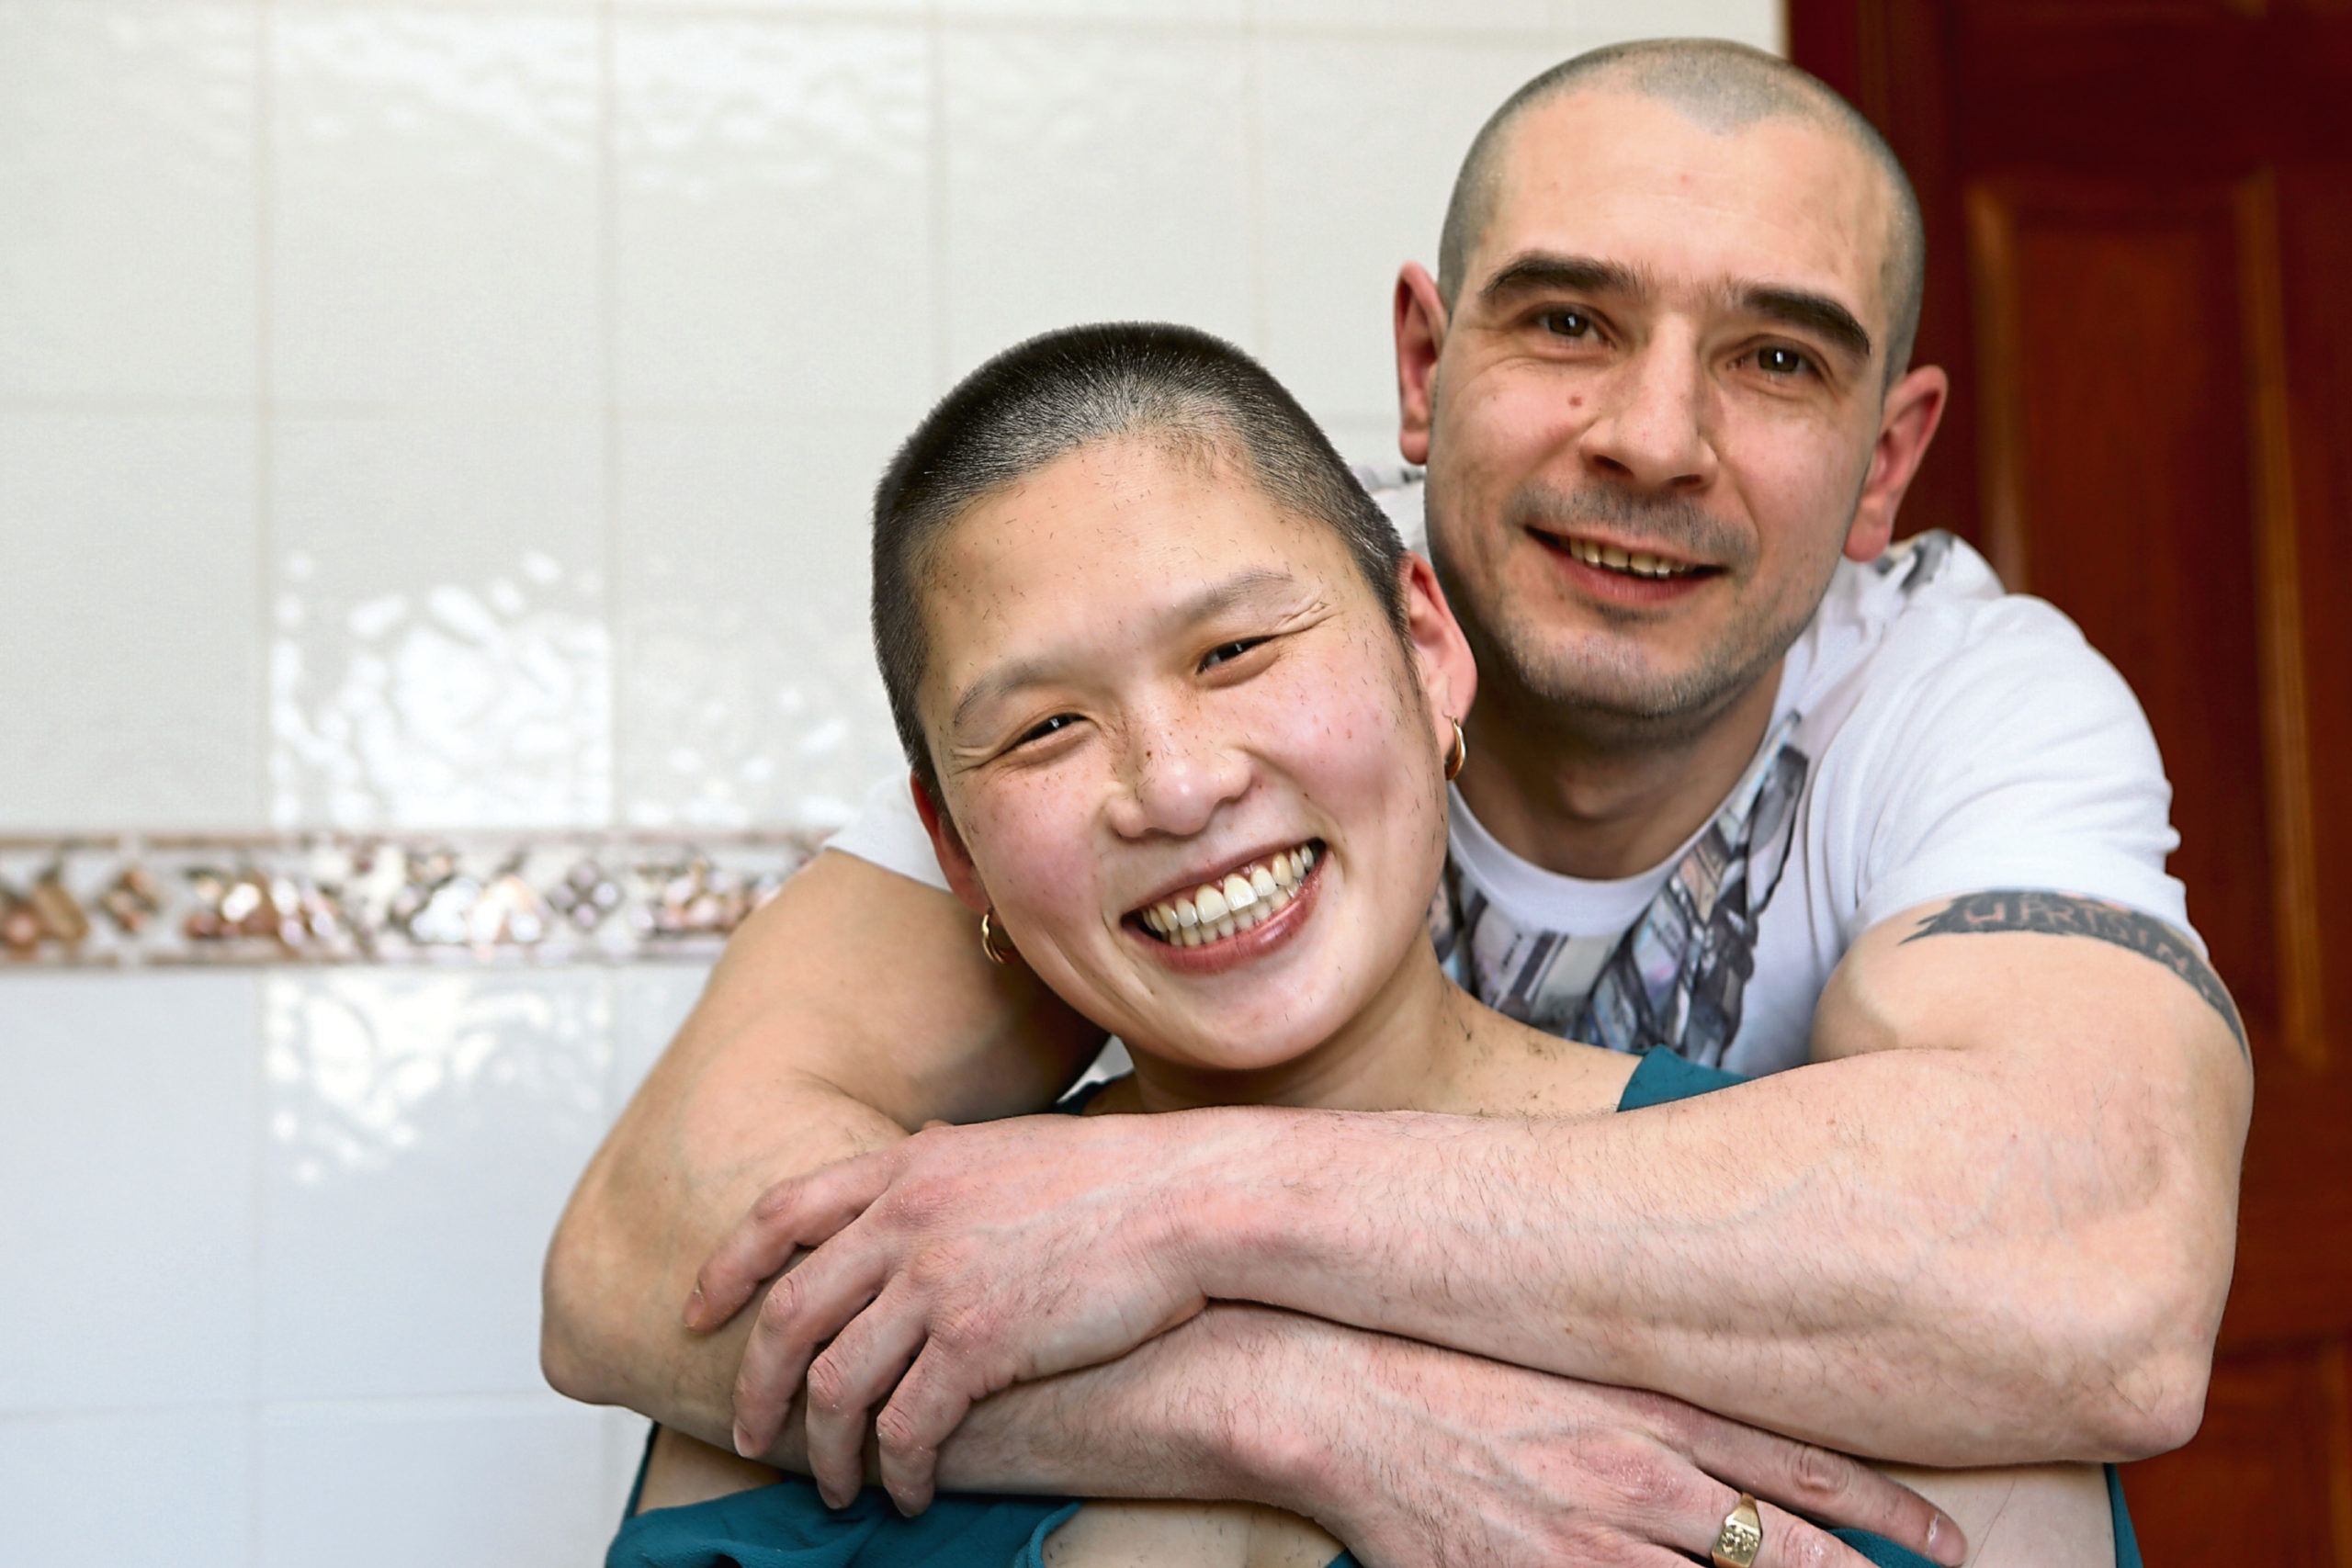 Cecilia Ho at home in Dundee, with her partner Gareth Kinghorn, after her charity head shave for the Bone Cancer Trust.